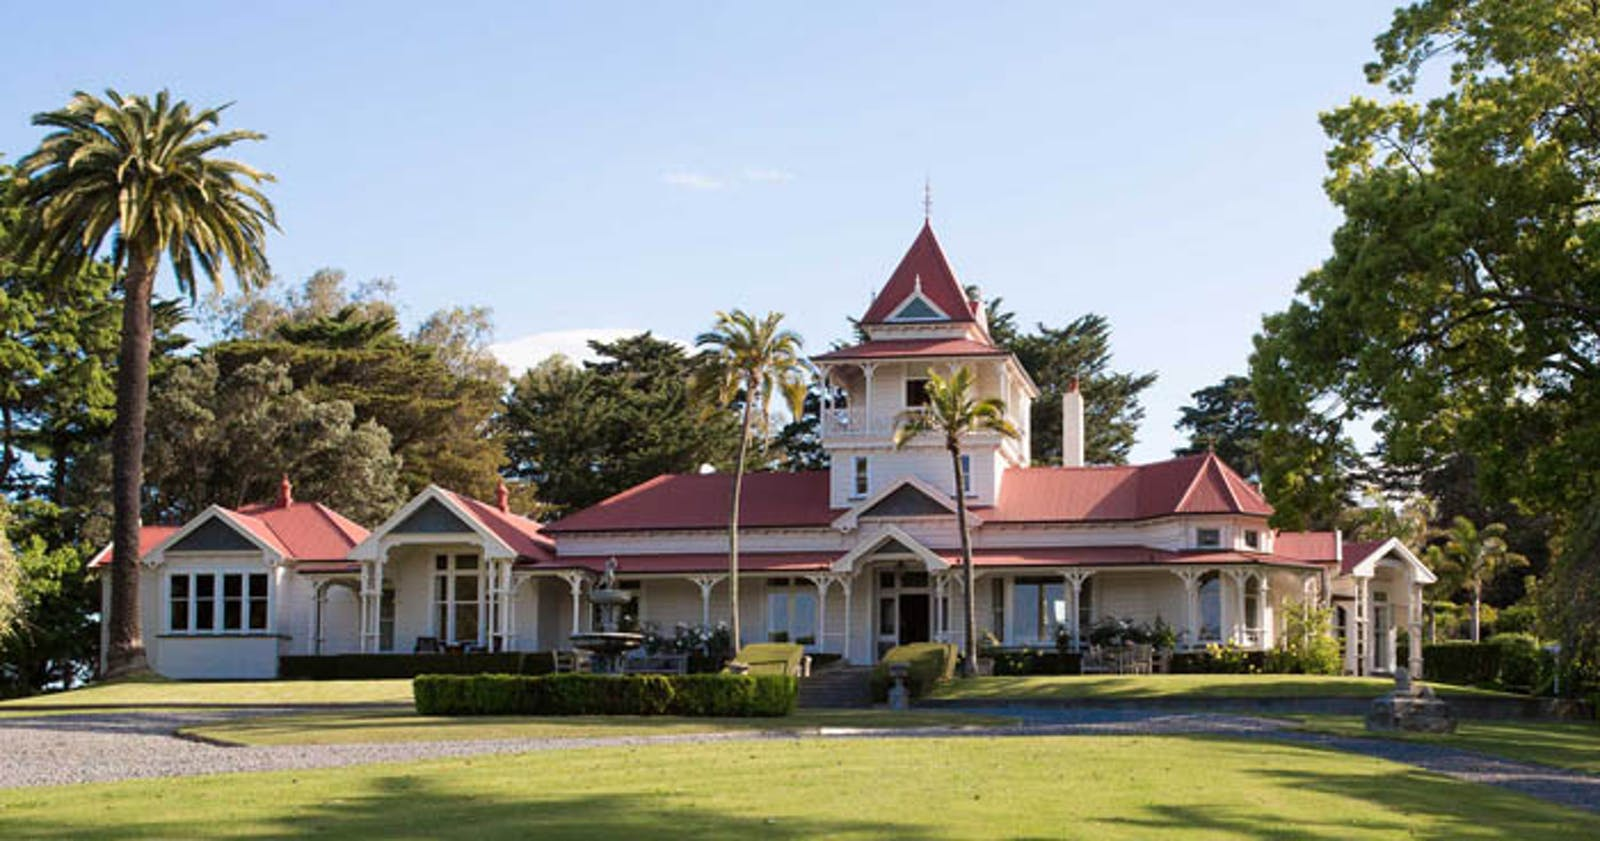 Exterior of Greenhill Lodge, New Zealand